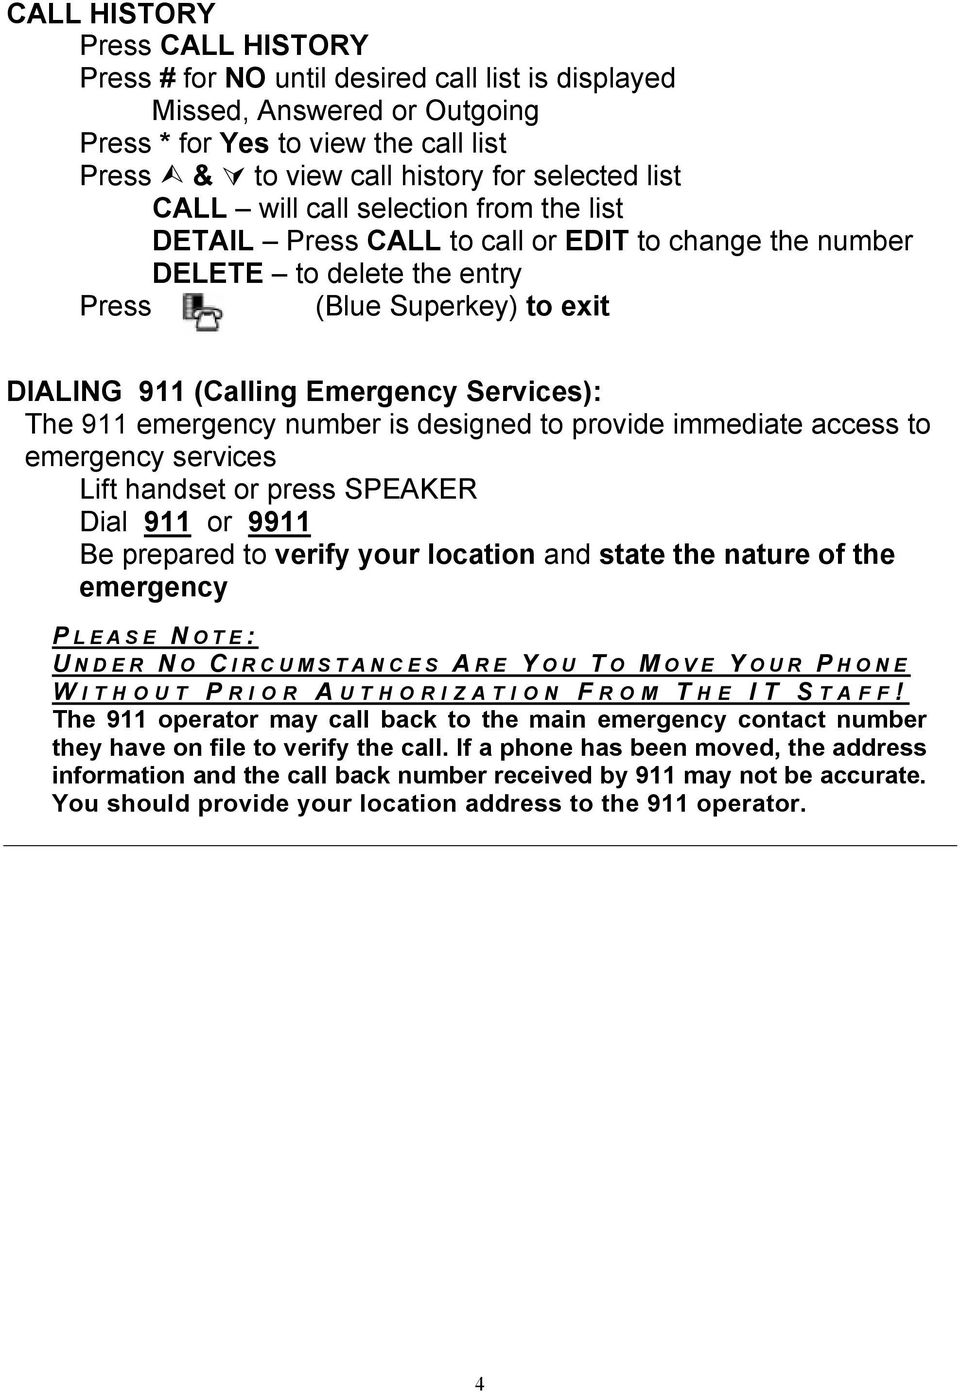 911 emergency number is designed to provide immediate access to emergency services Lift handset or press SPEAKER Dial 911 or 9911 Be prepared to verify your location and state the nature of the